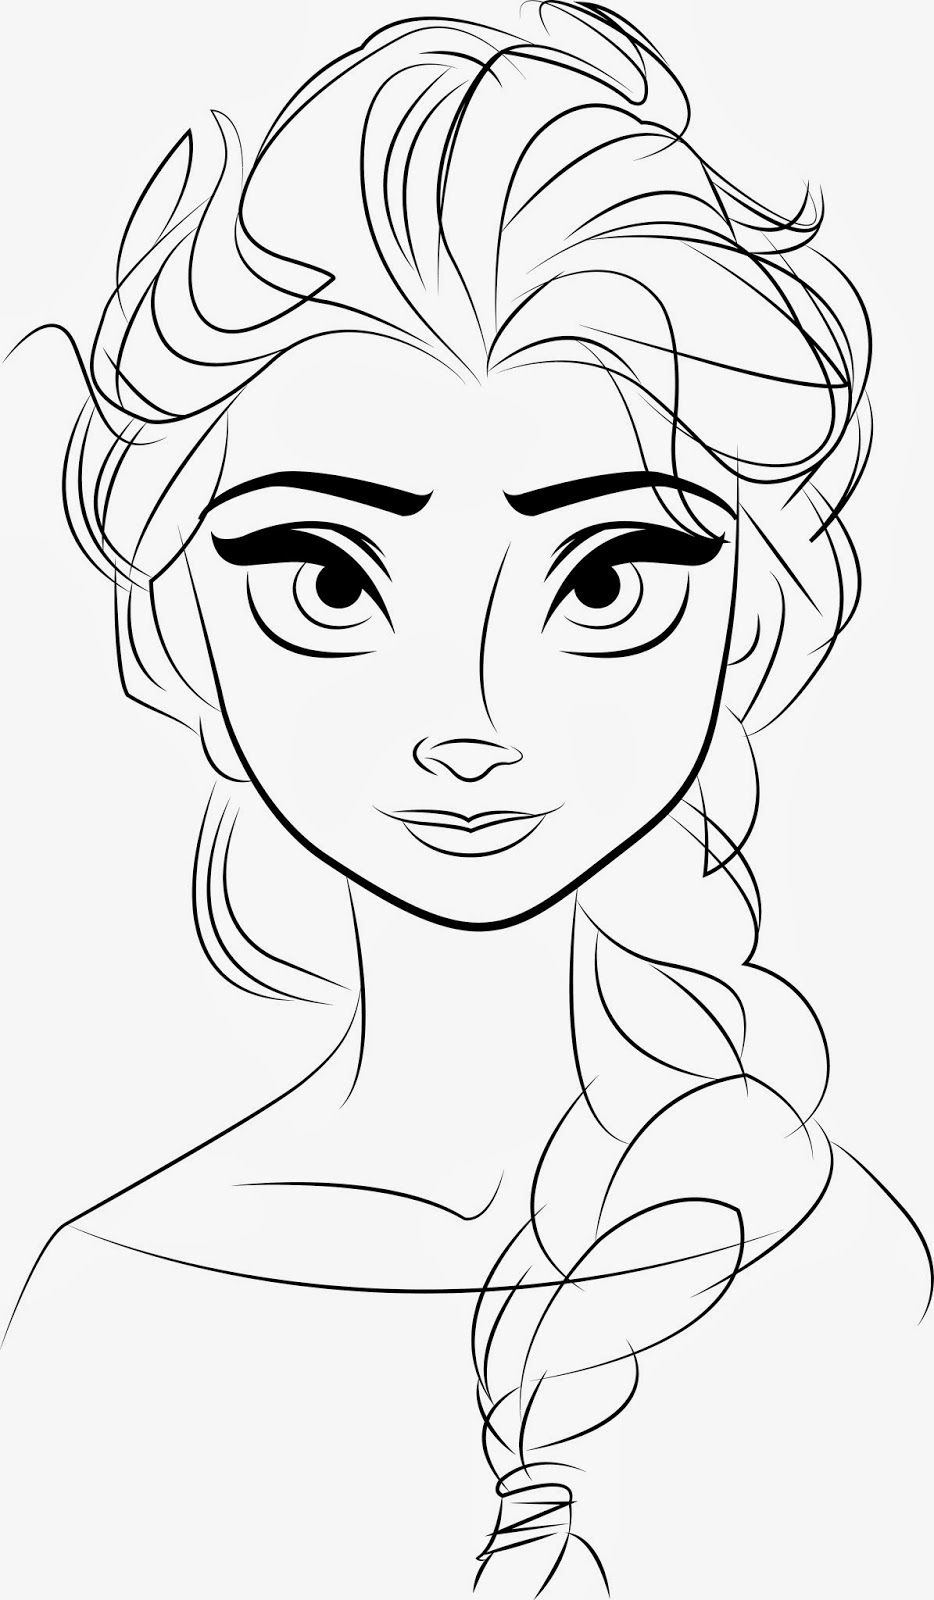 coloring outline for kids princesses to color for kids  princesses kids coloring pages for coloring outline kids